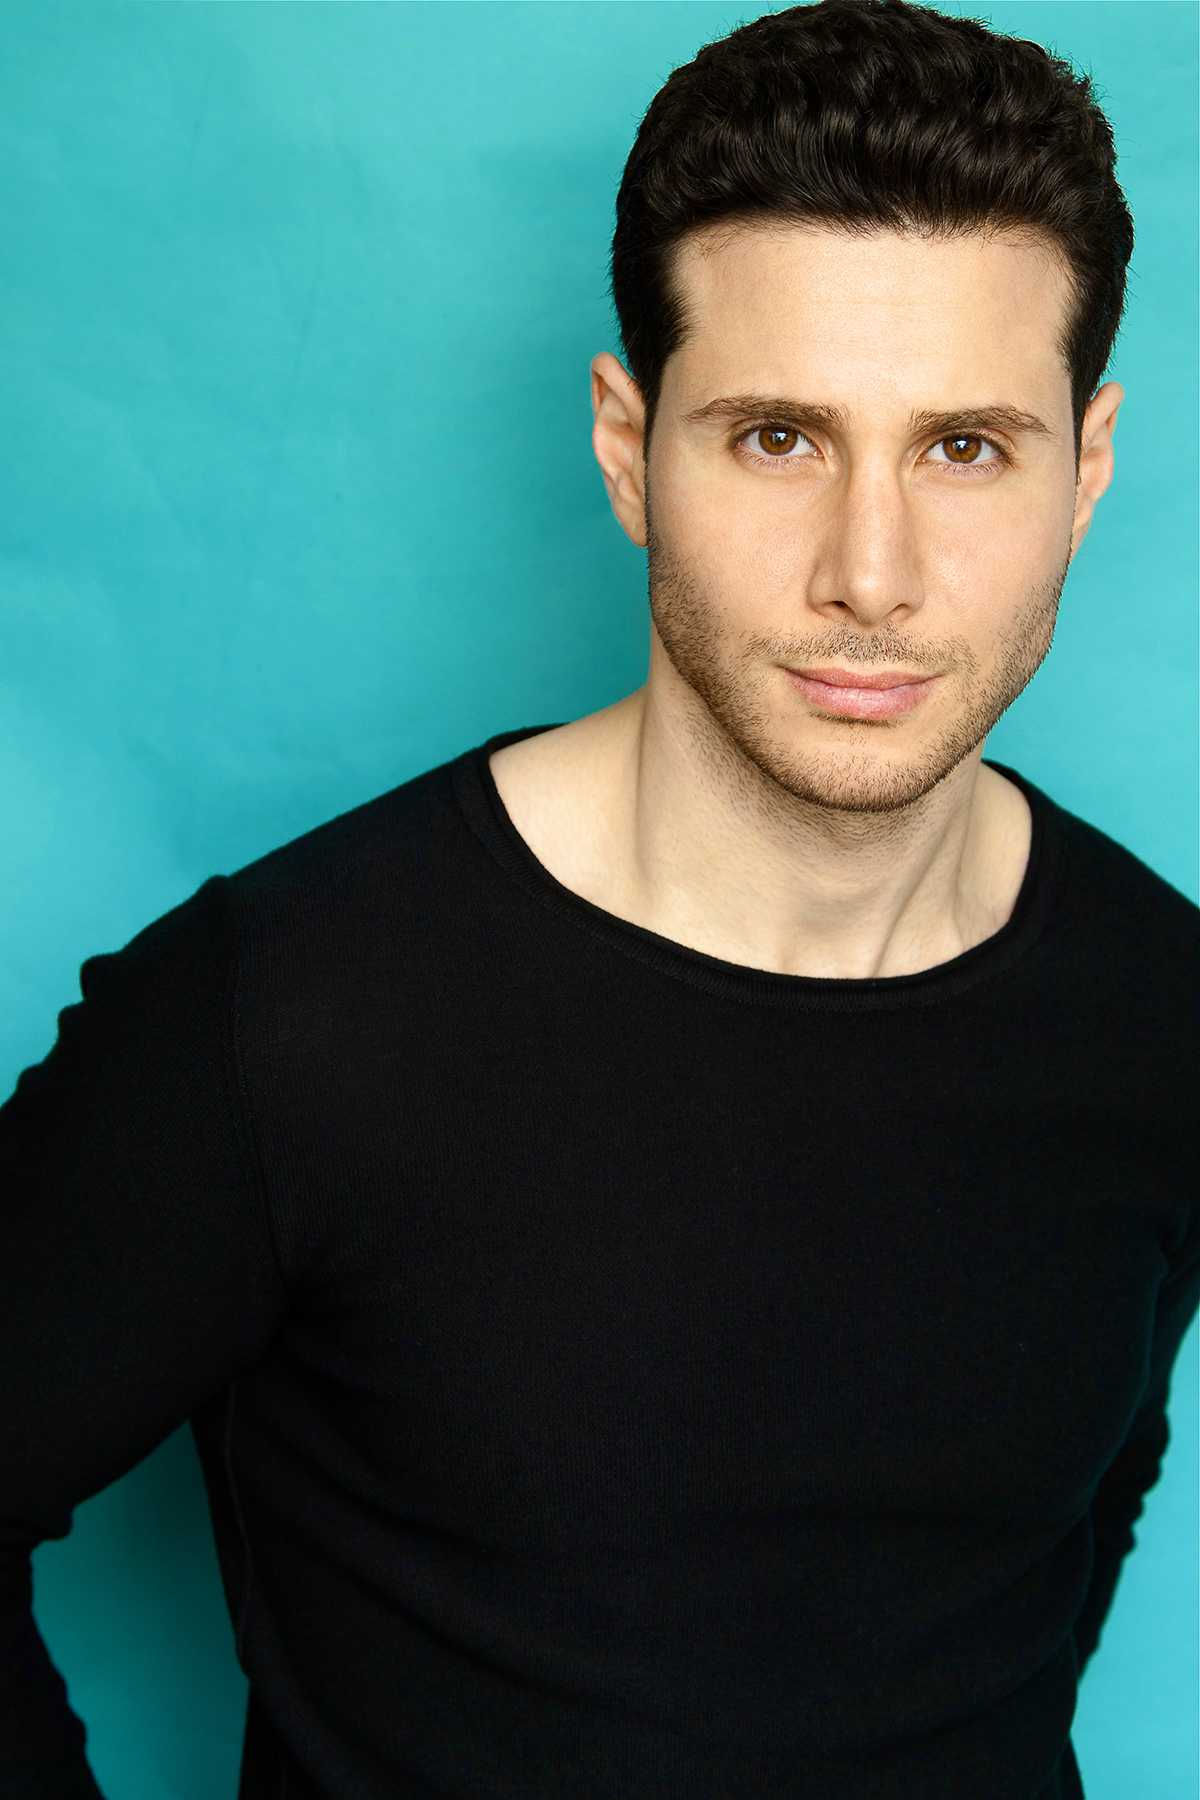 Exclusive: Sean Nateghi Chats Exercise, Movies & Oscar Ambitions | Sean Nateghi